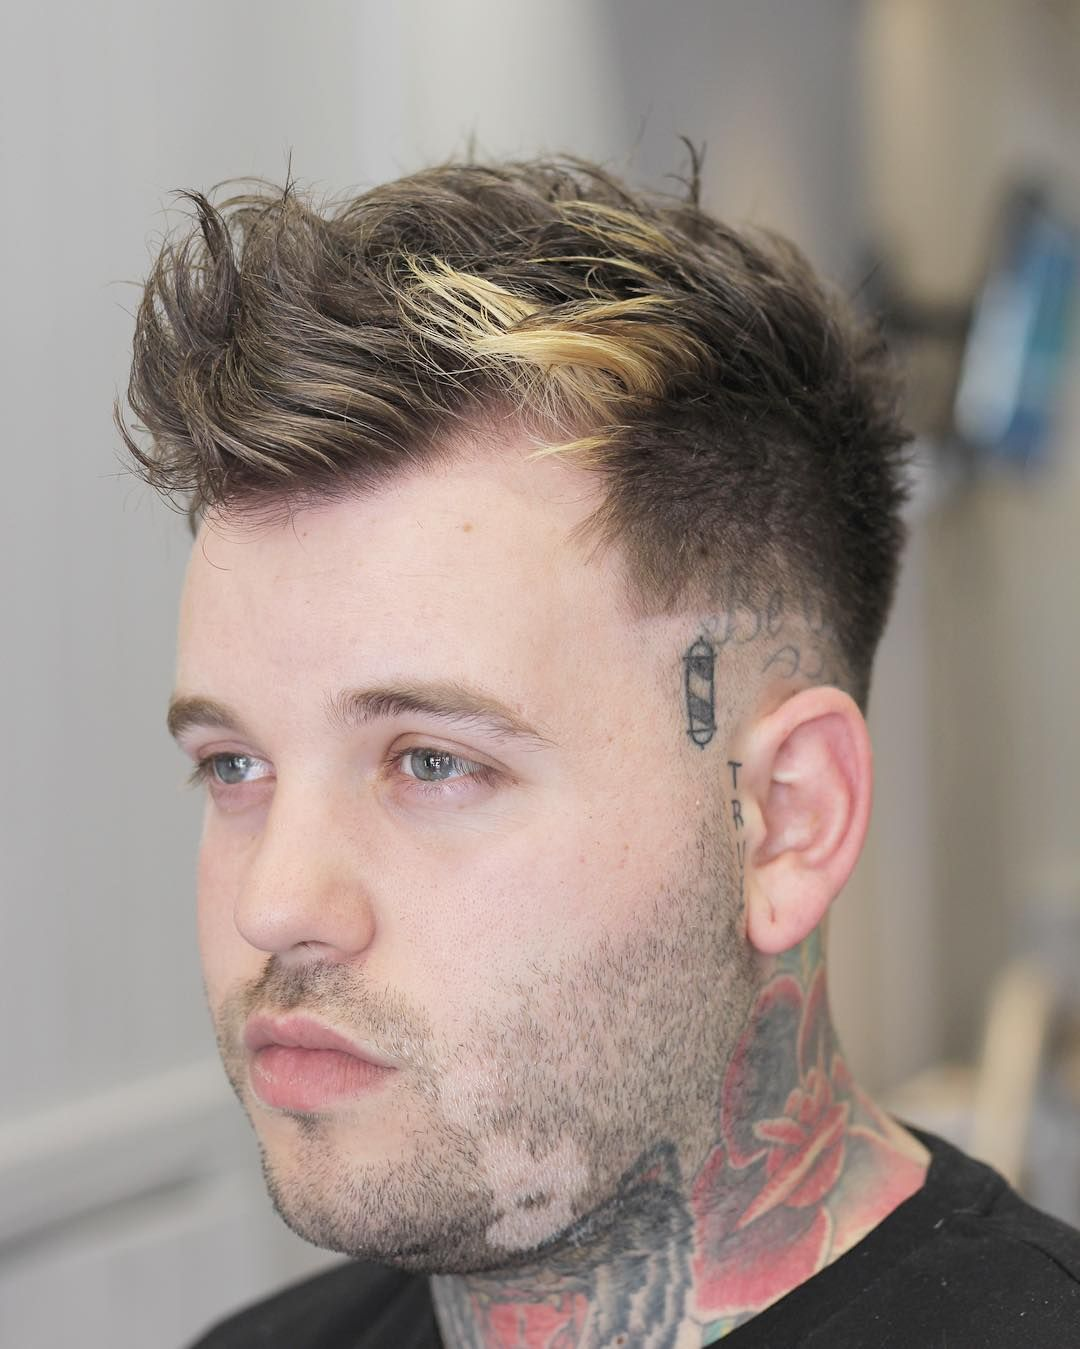 Haircut for men 2018 thin hair best  cool hairstyles for menus u guys for   hair colors